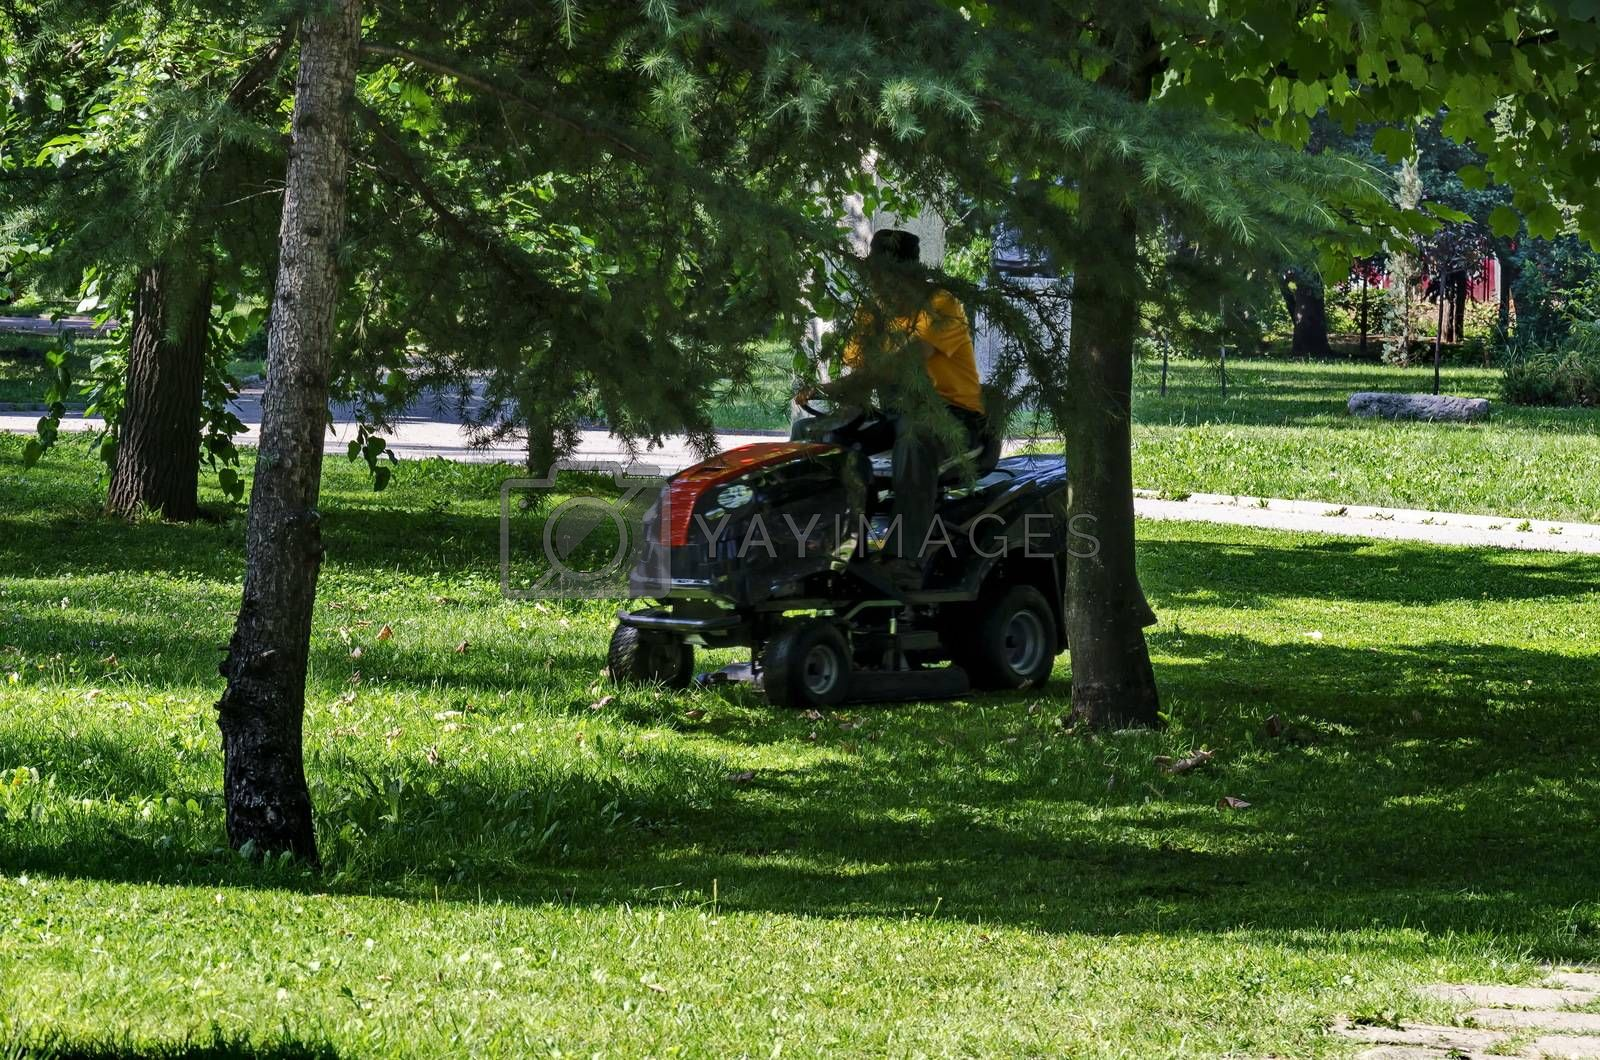 An experienced worker mows grass with a lawn tractor in the garden, Sofia, Bulgaria